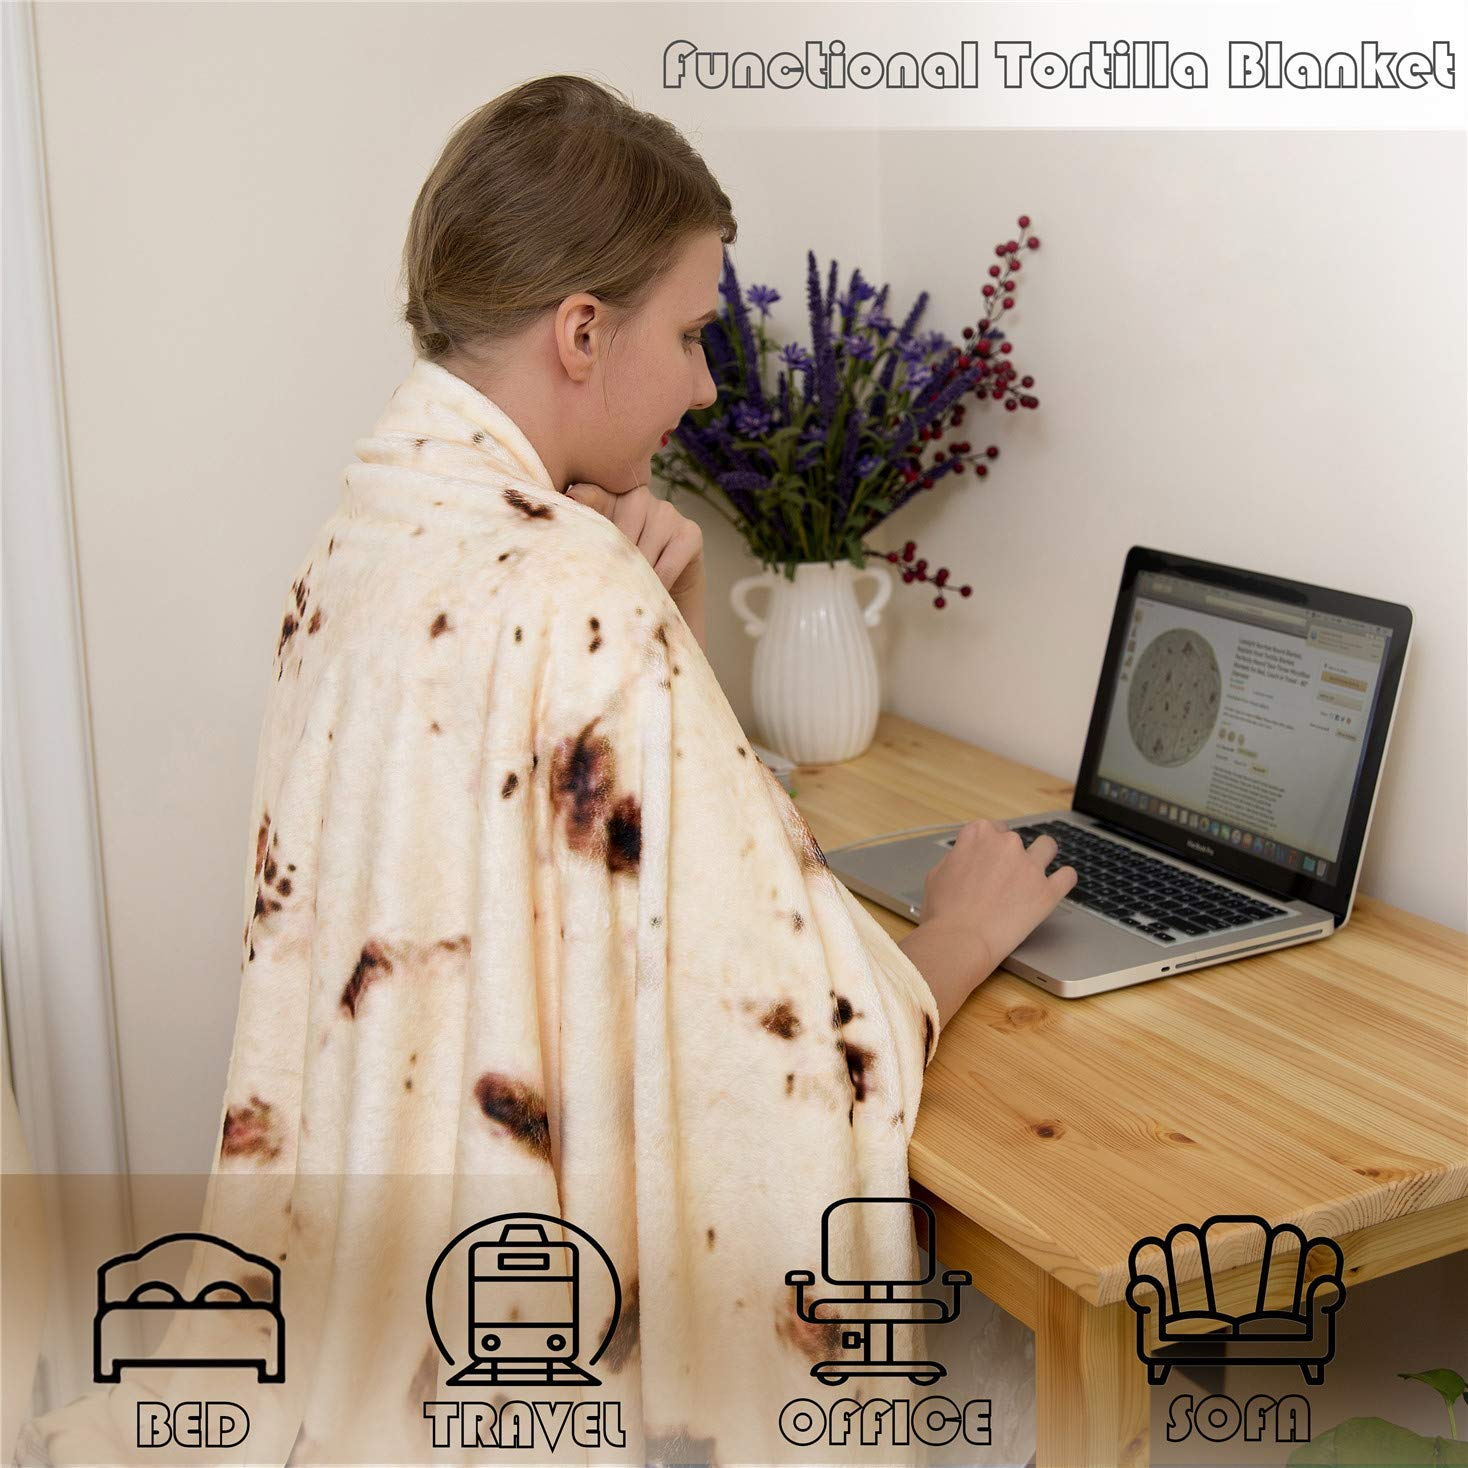 mermaker Burritos Tortilla Blanket, Realistic Burritos Wrap Giant Round Blanket, Novelty Soft Flannel Food Tortilla Blanket for Adults (80'' Diameter, Yellow-4) by mermaker (Image #3)